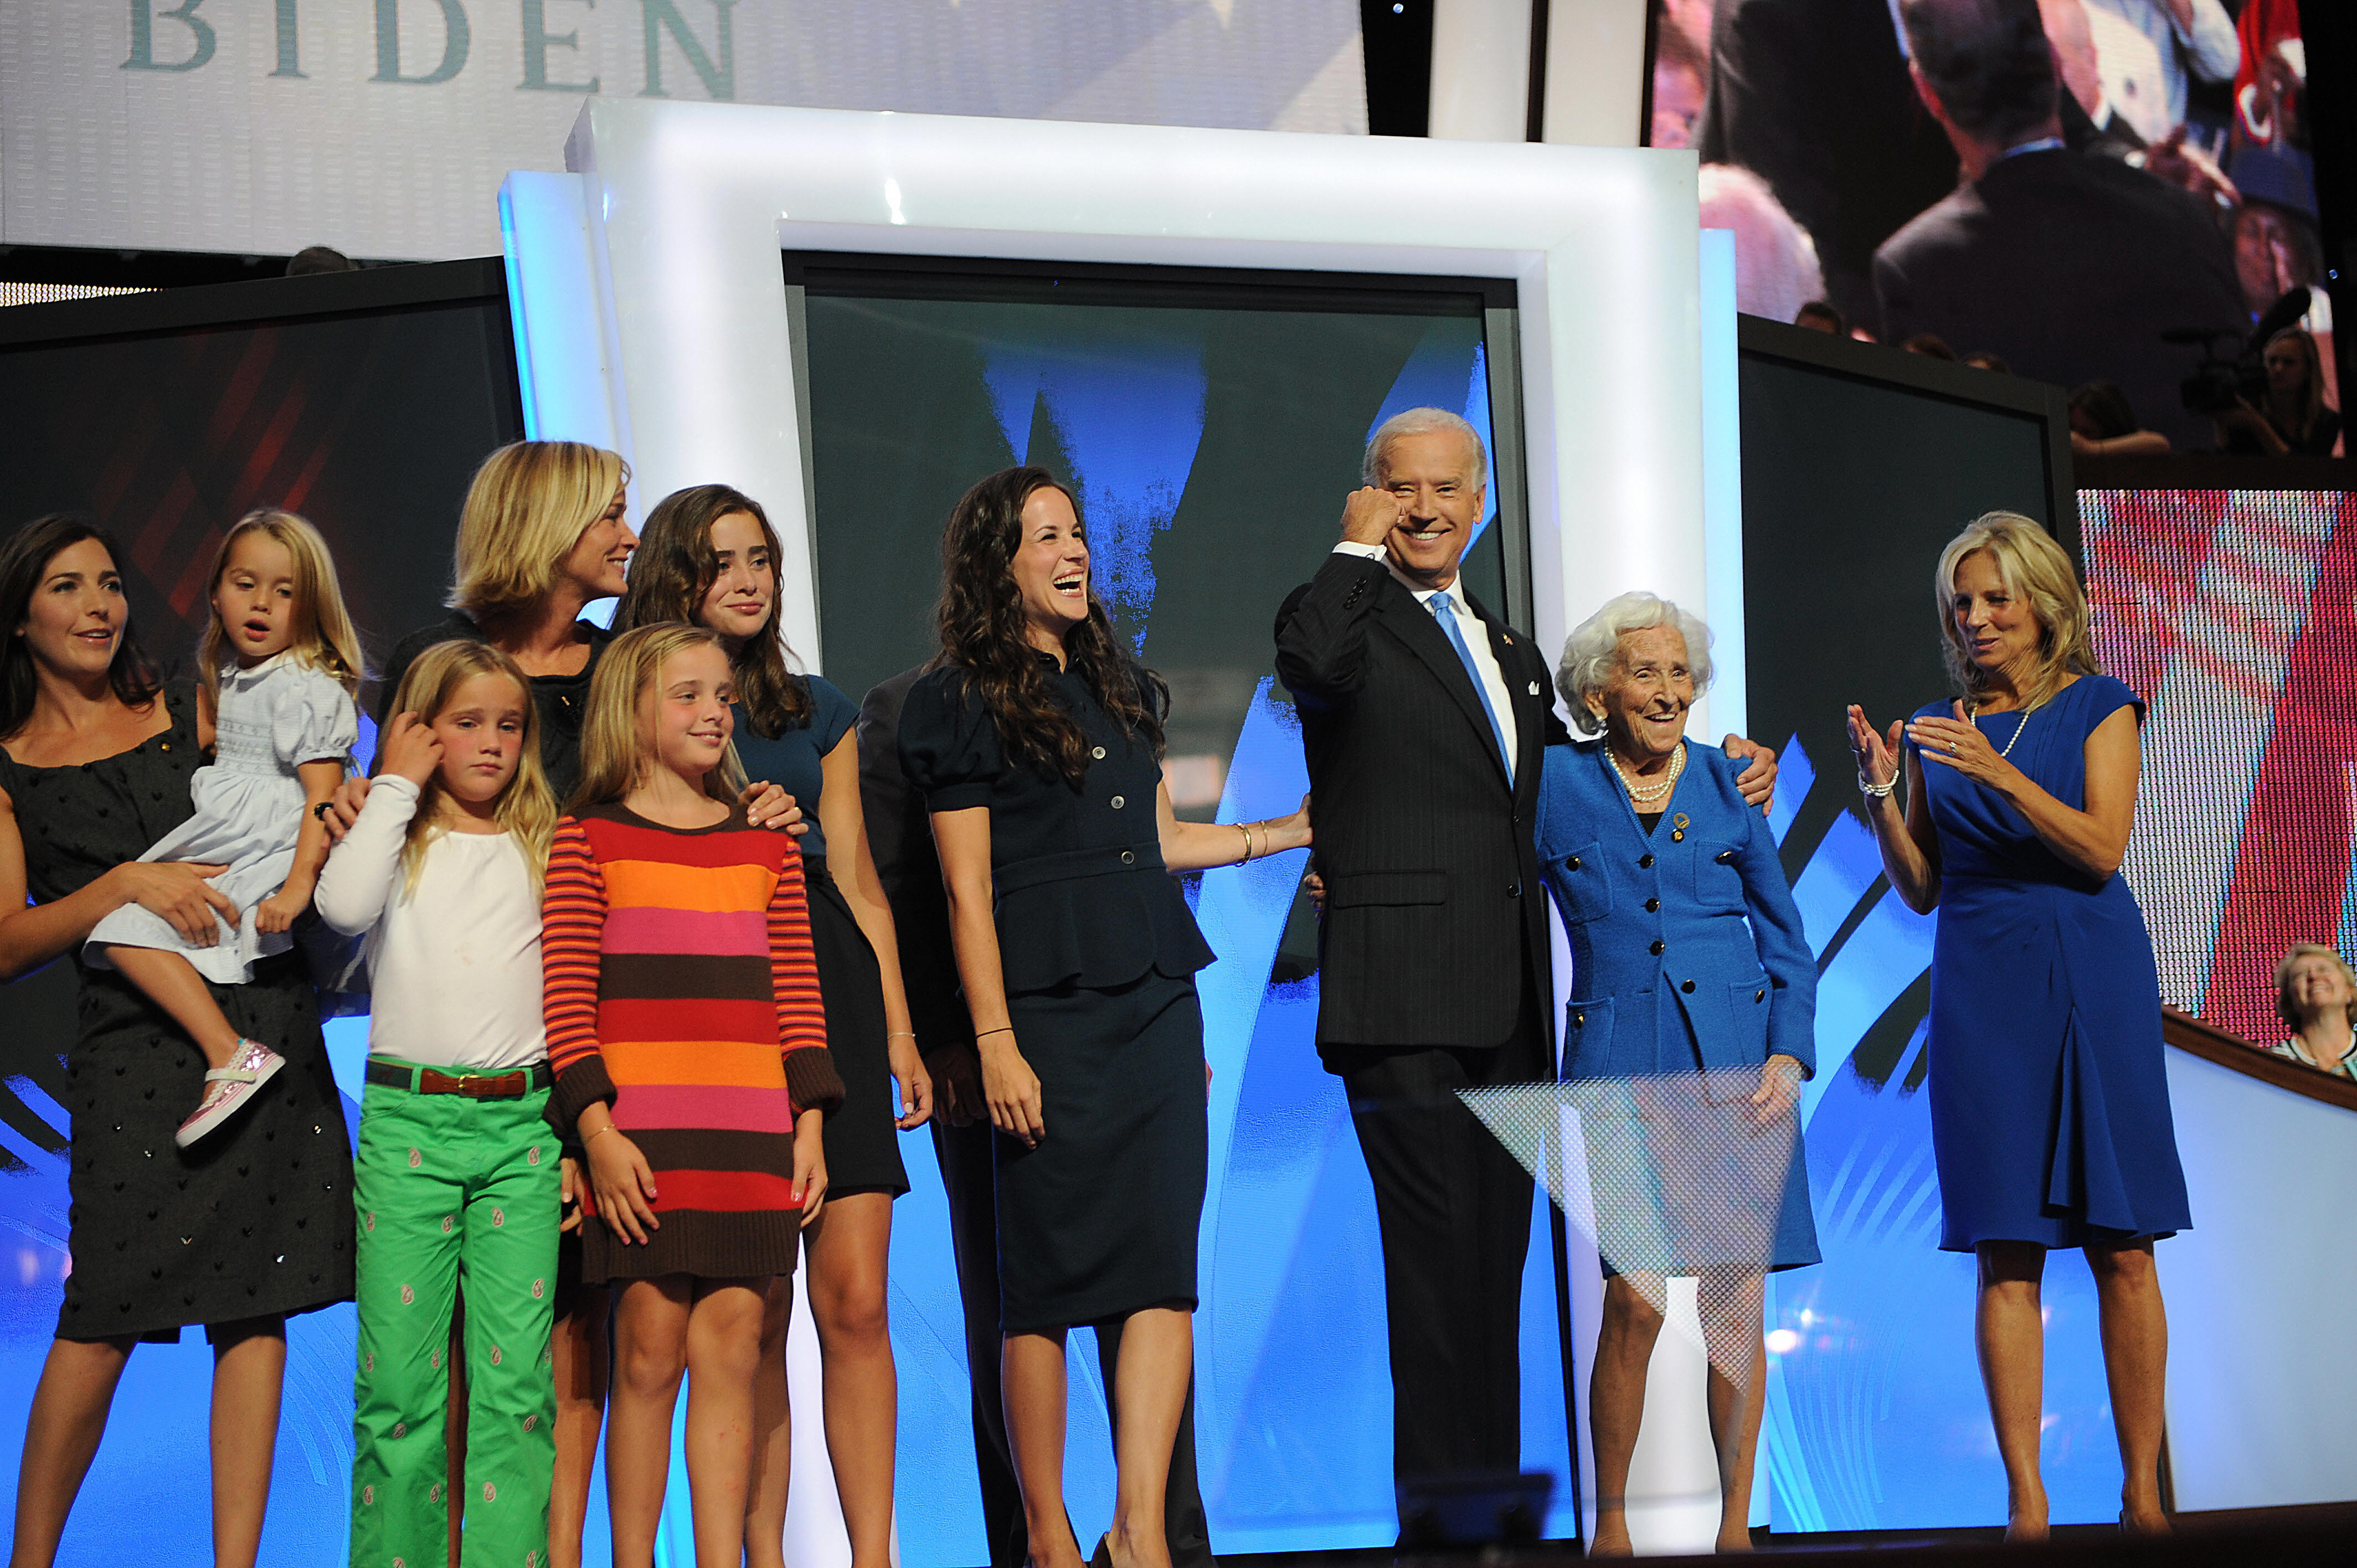 Biden mother Jean and family